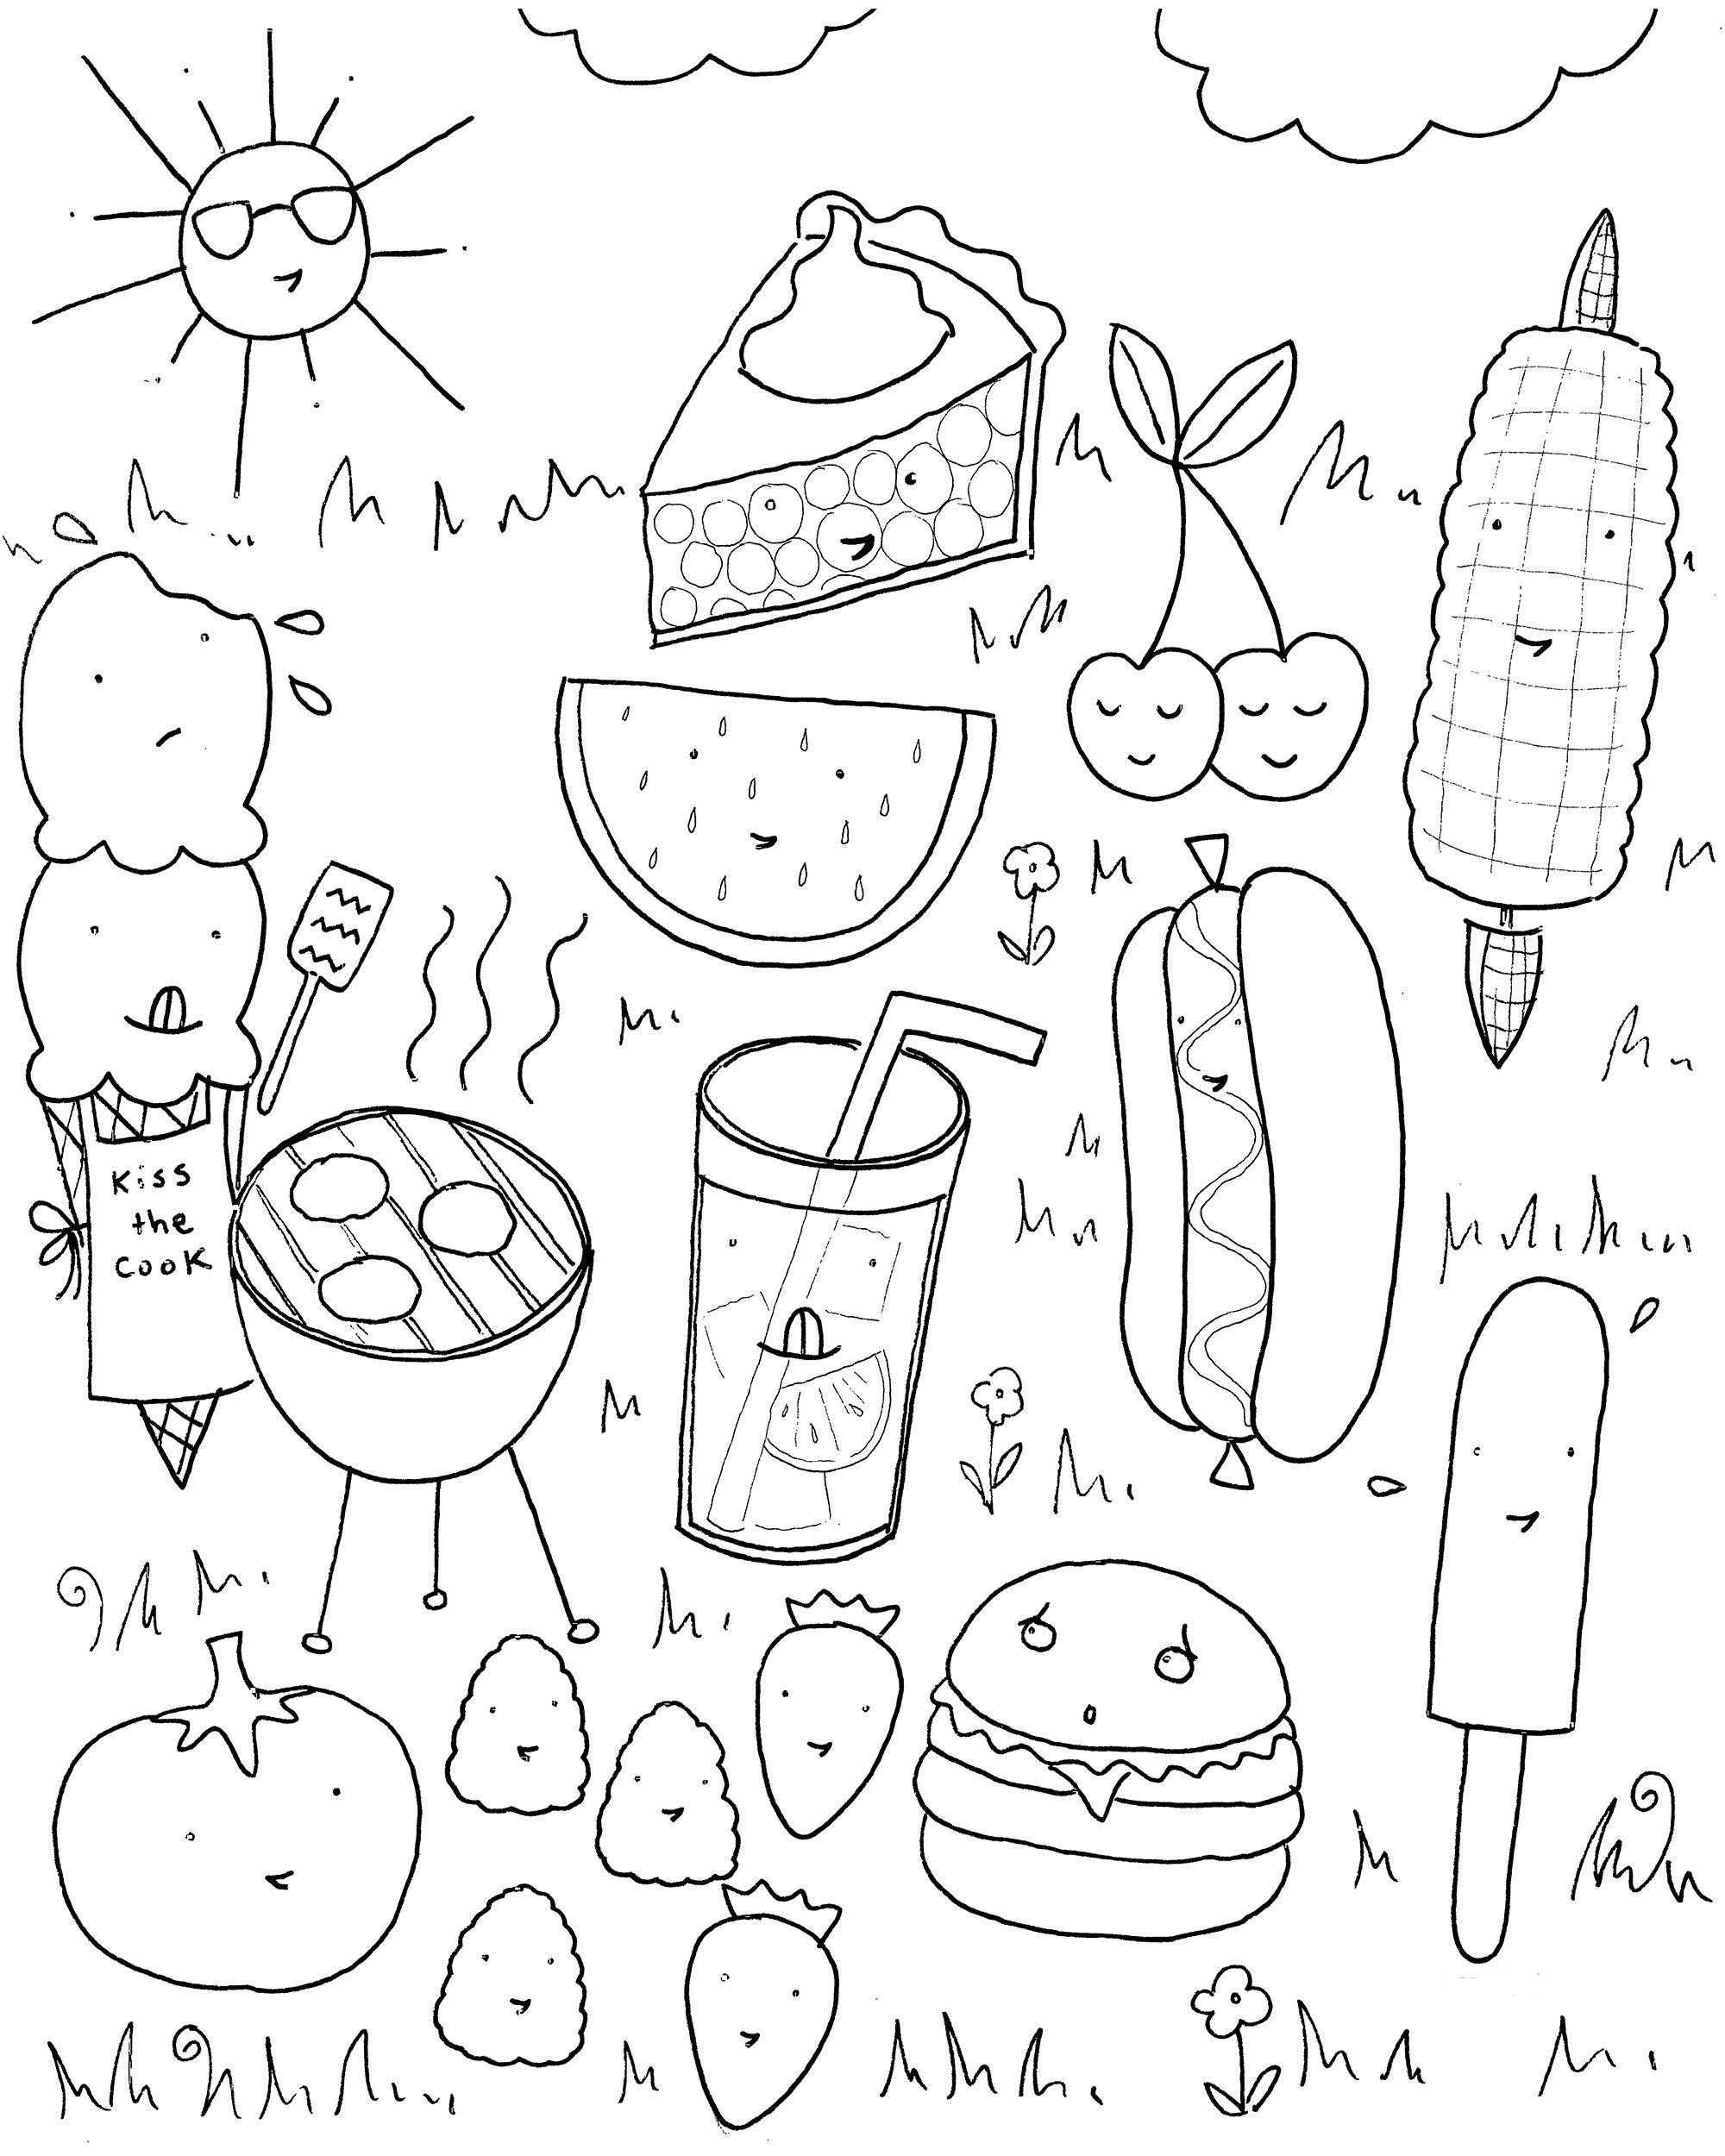 coloring food for kids printable healthy eating chart coloring pages food for kids coloring